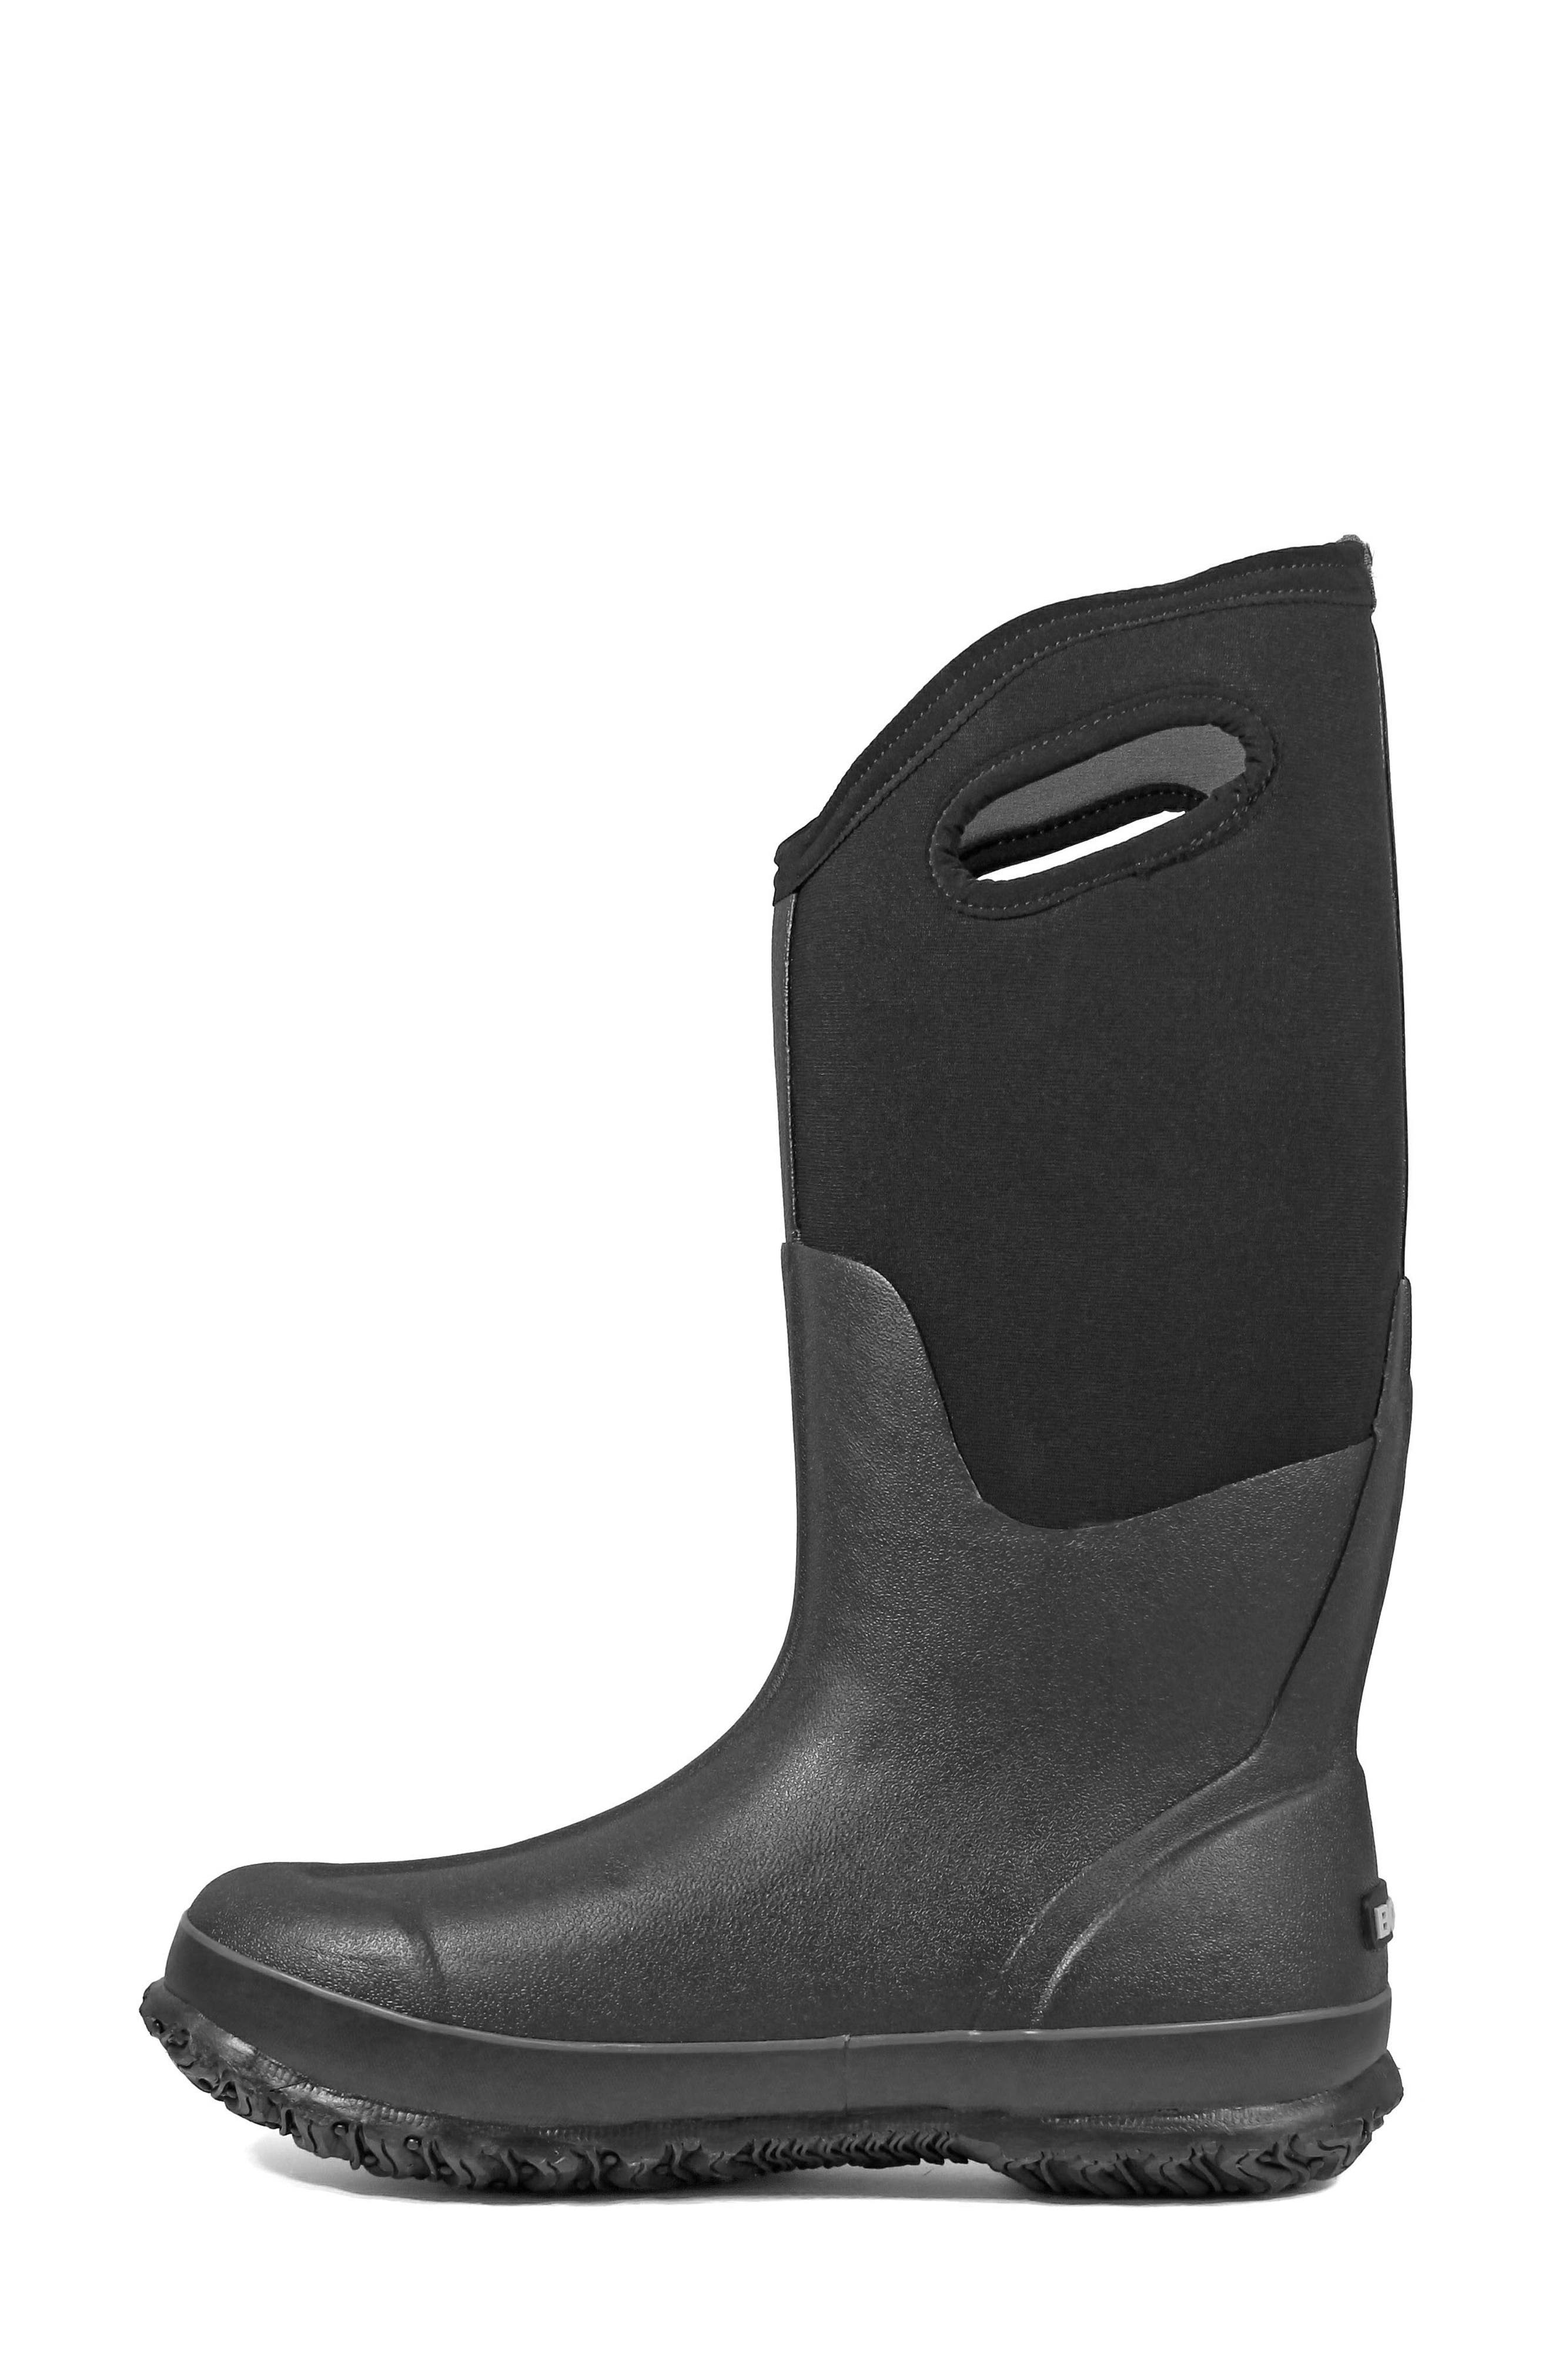 BOGS, Classic Tall Waterproof Snow Boot, Alternate thumbnail 8, color, BLACK